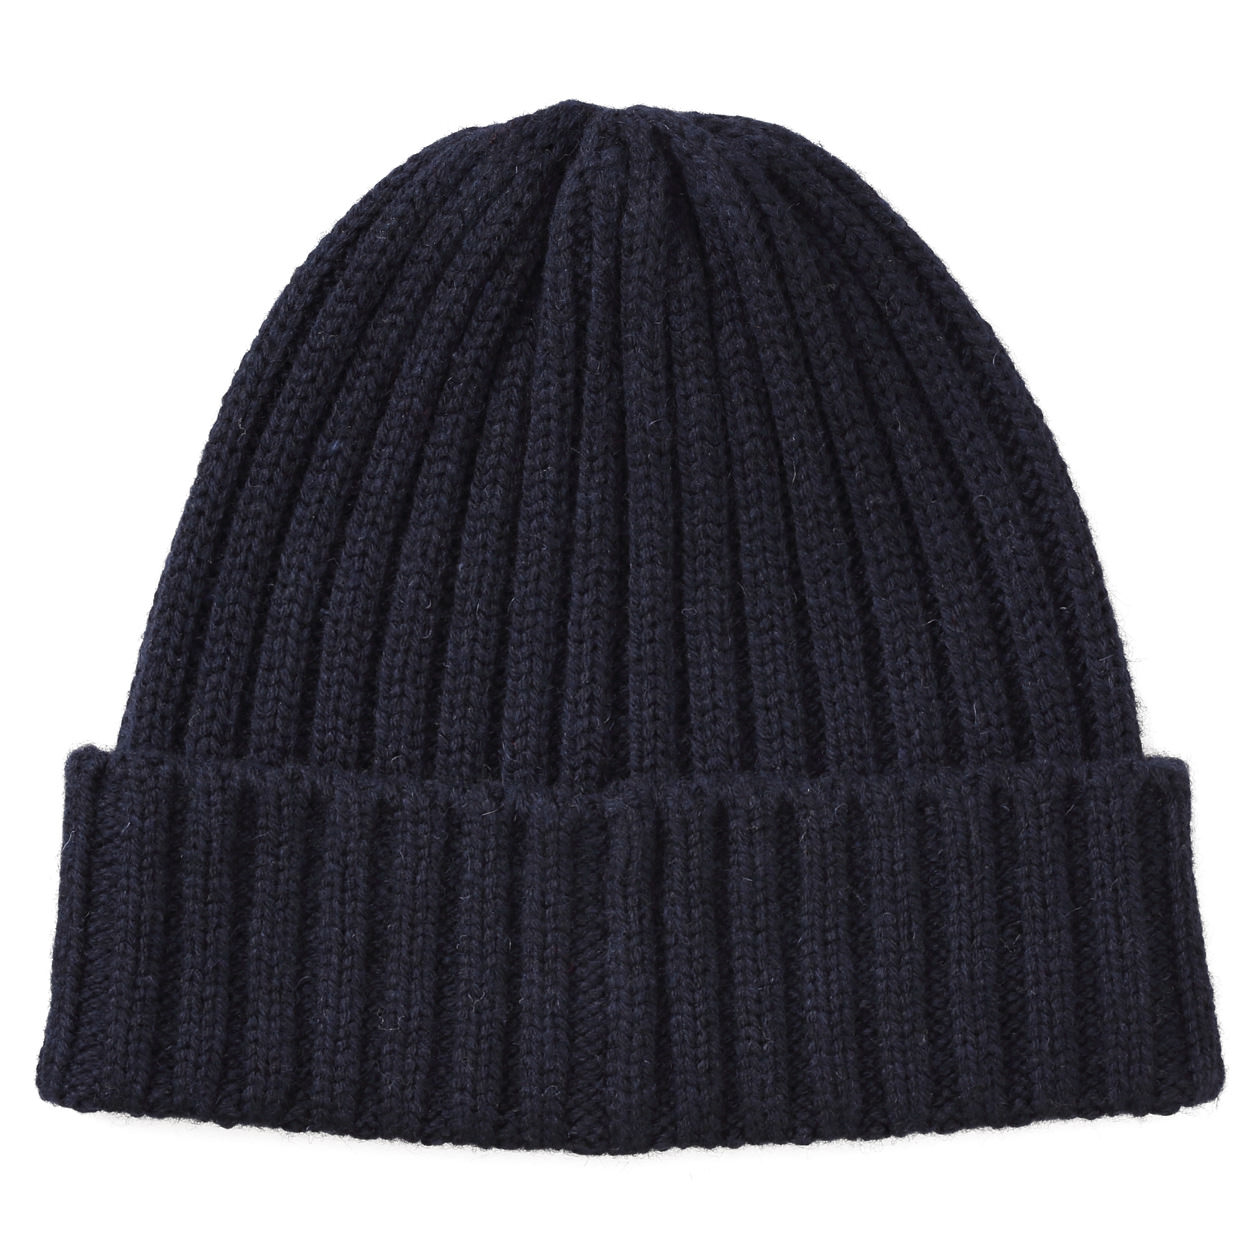 Non-Itchy On Forehead Wool Mix Rib Beanie  9f78f688a19